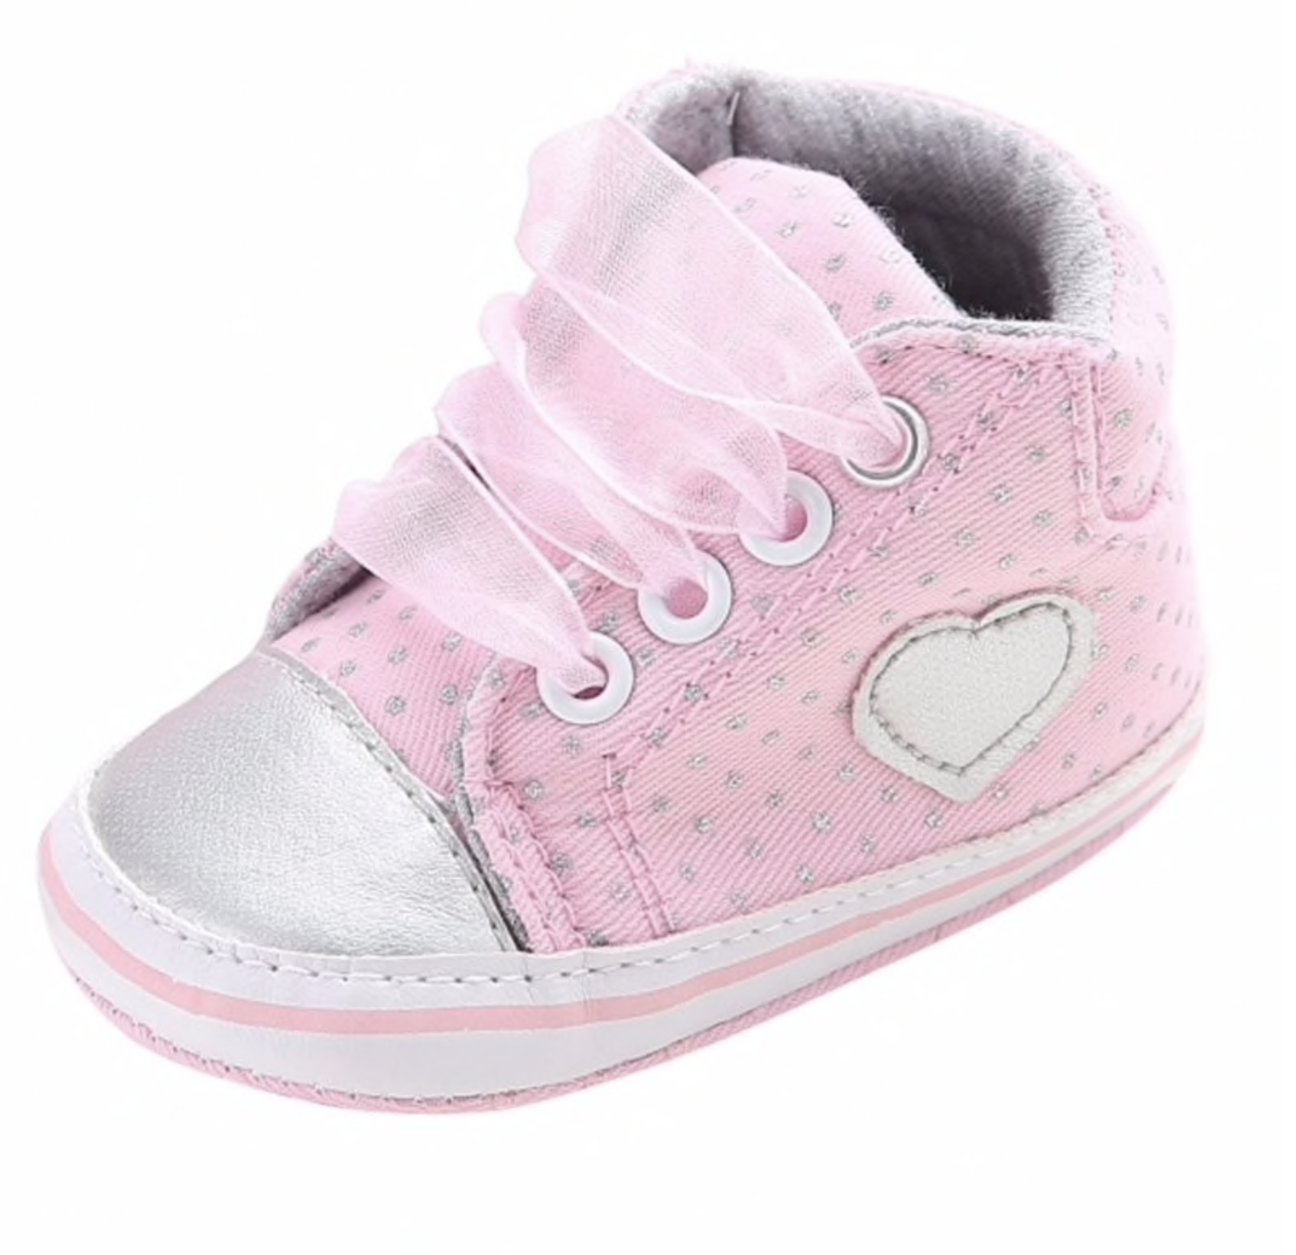 Baby Girl Shoe Pink Heart Printed Shoes For Baby Girl Baby Crib Shoes Baby Shoes Baby Girl Shoes